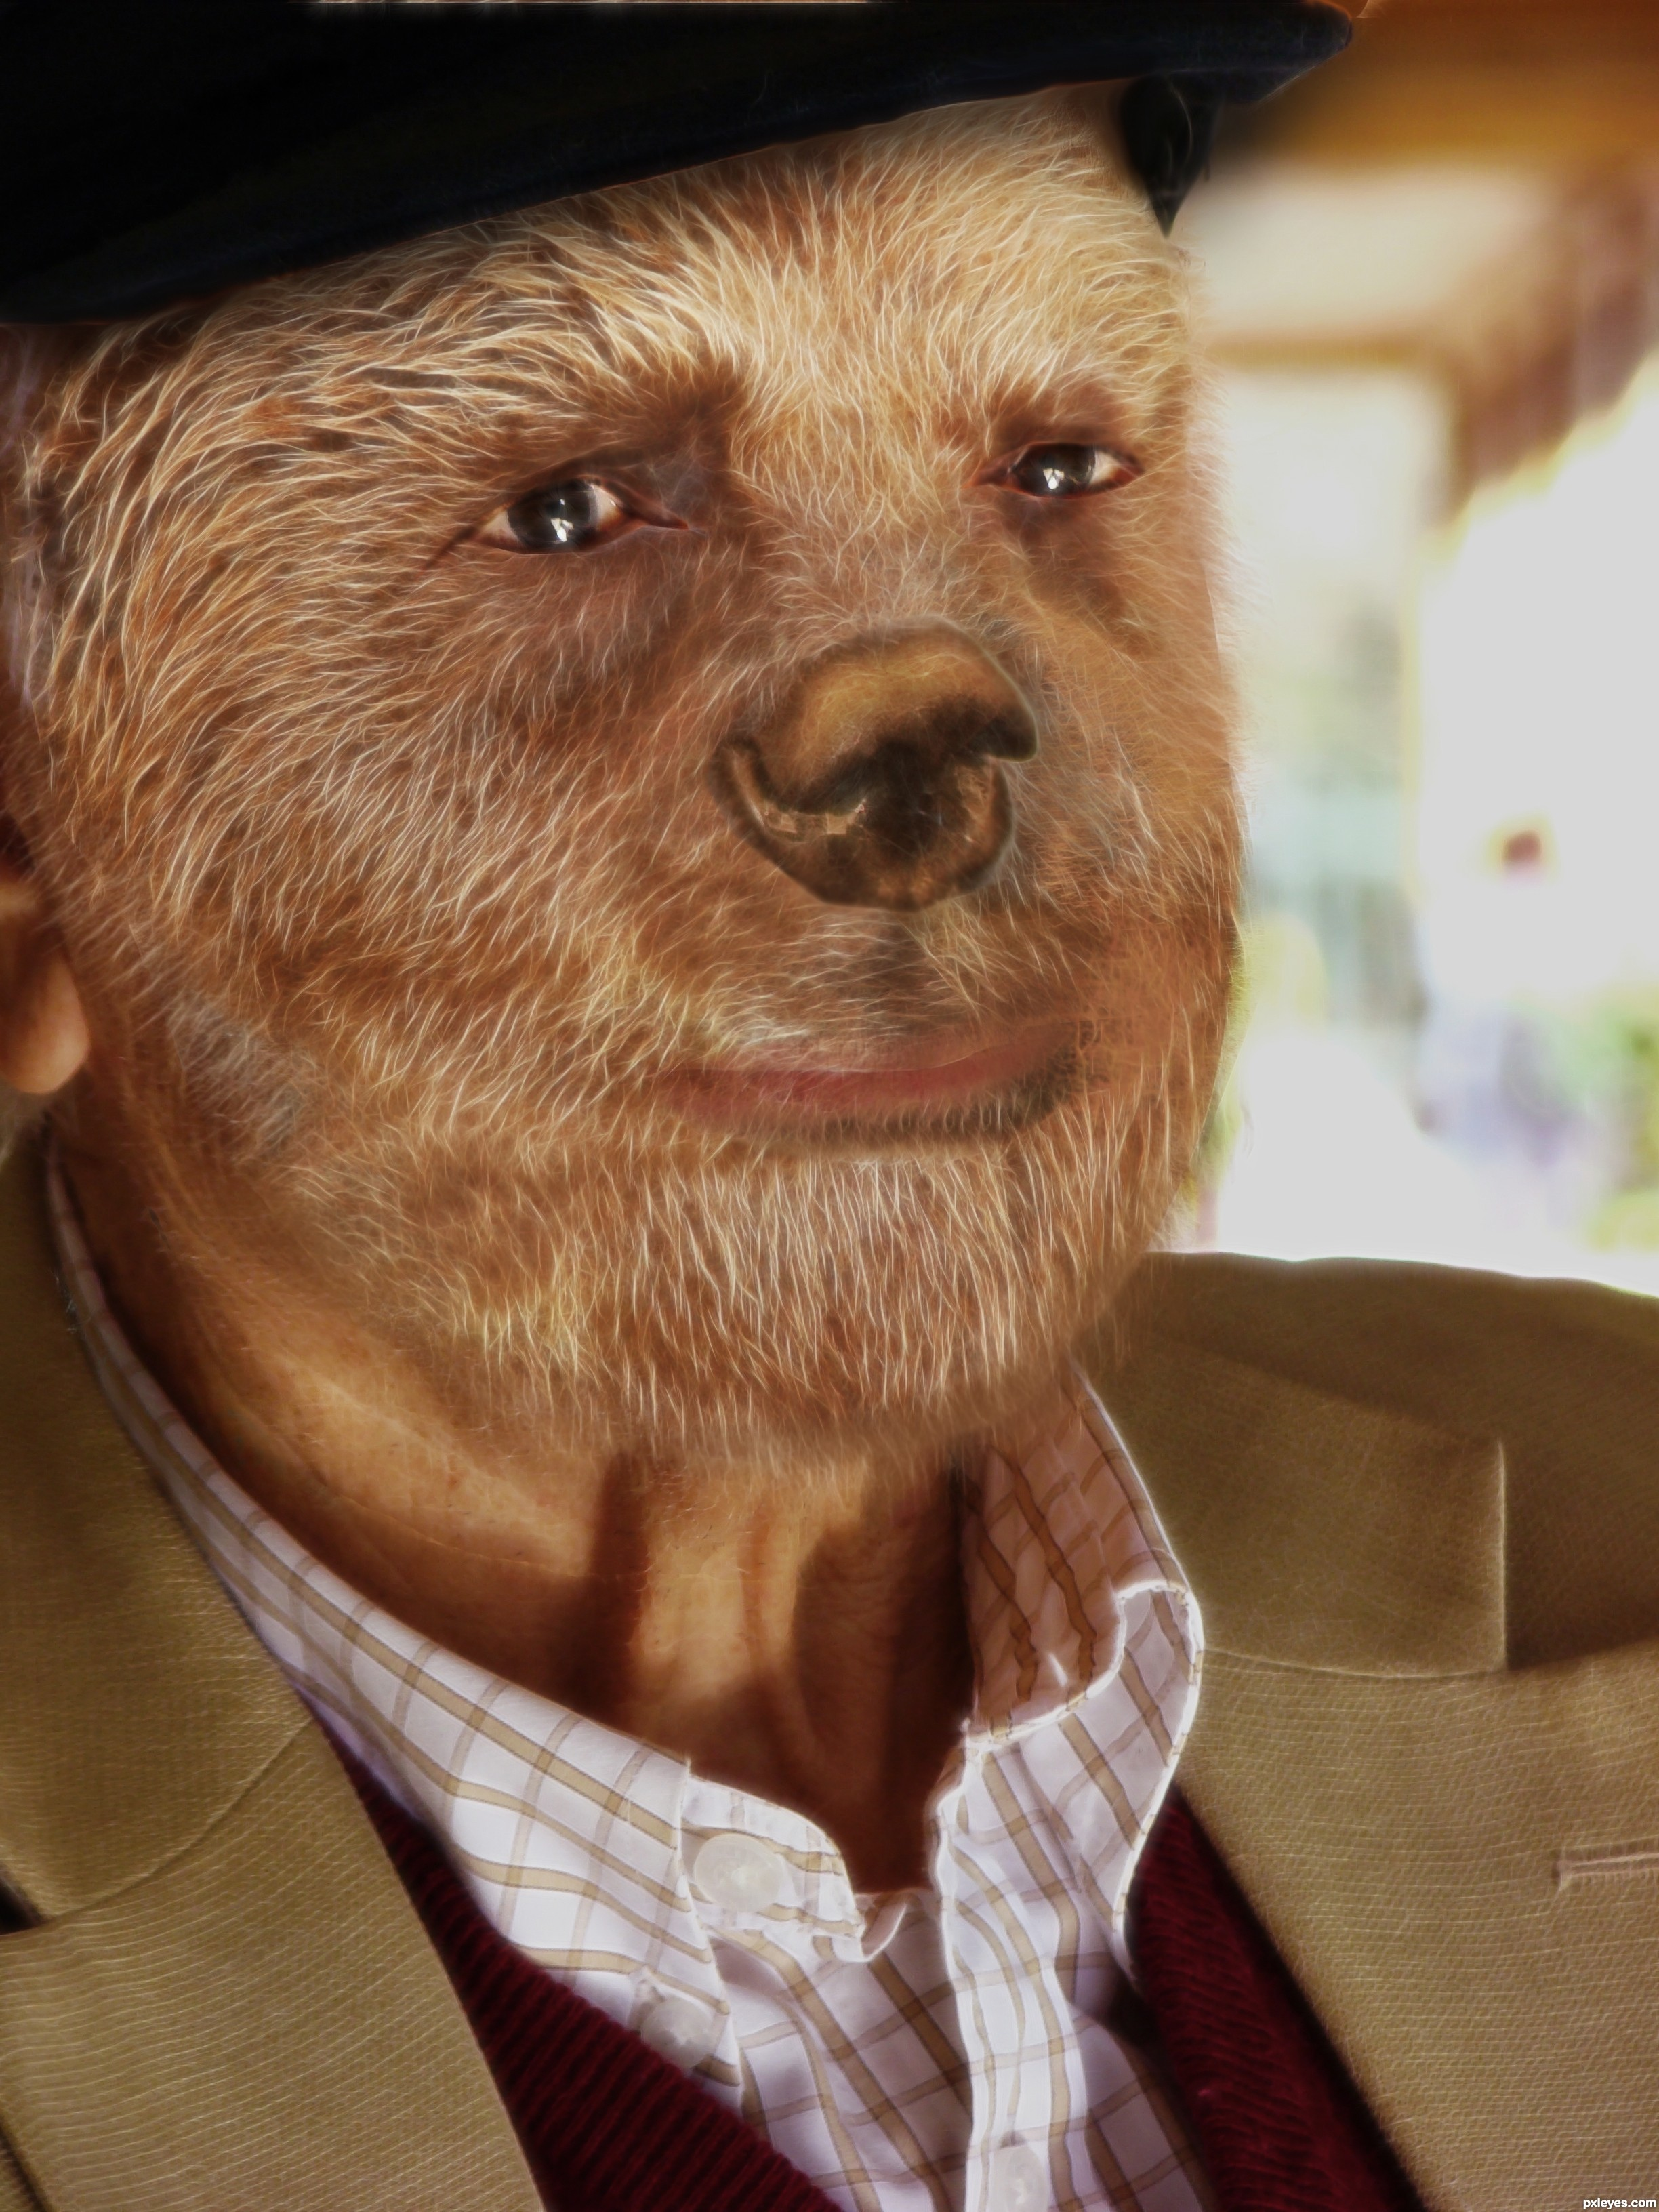 Old Bear Picture By Dynossaurus For Surreal Face Photoshop Contest